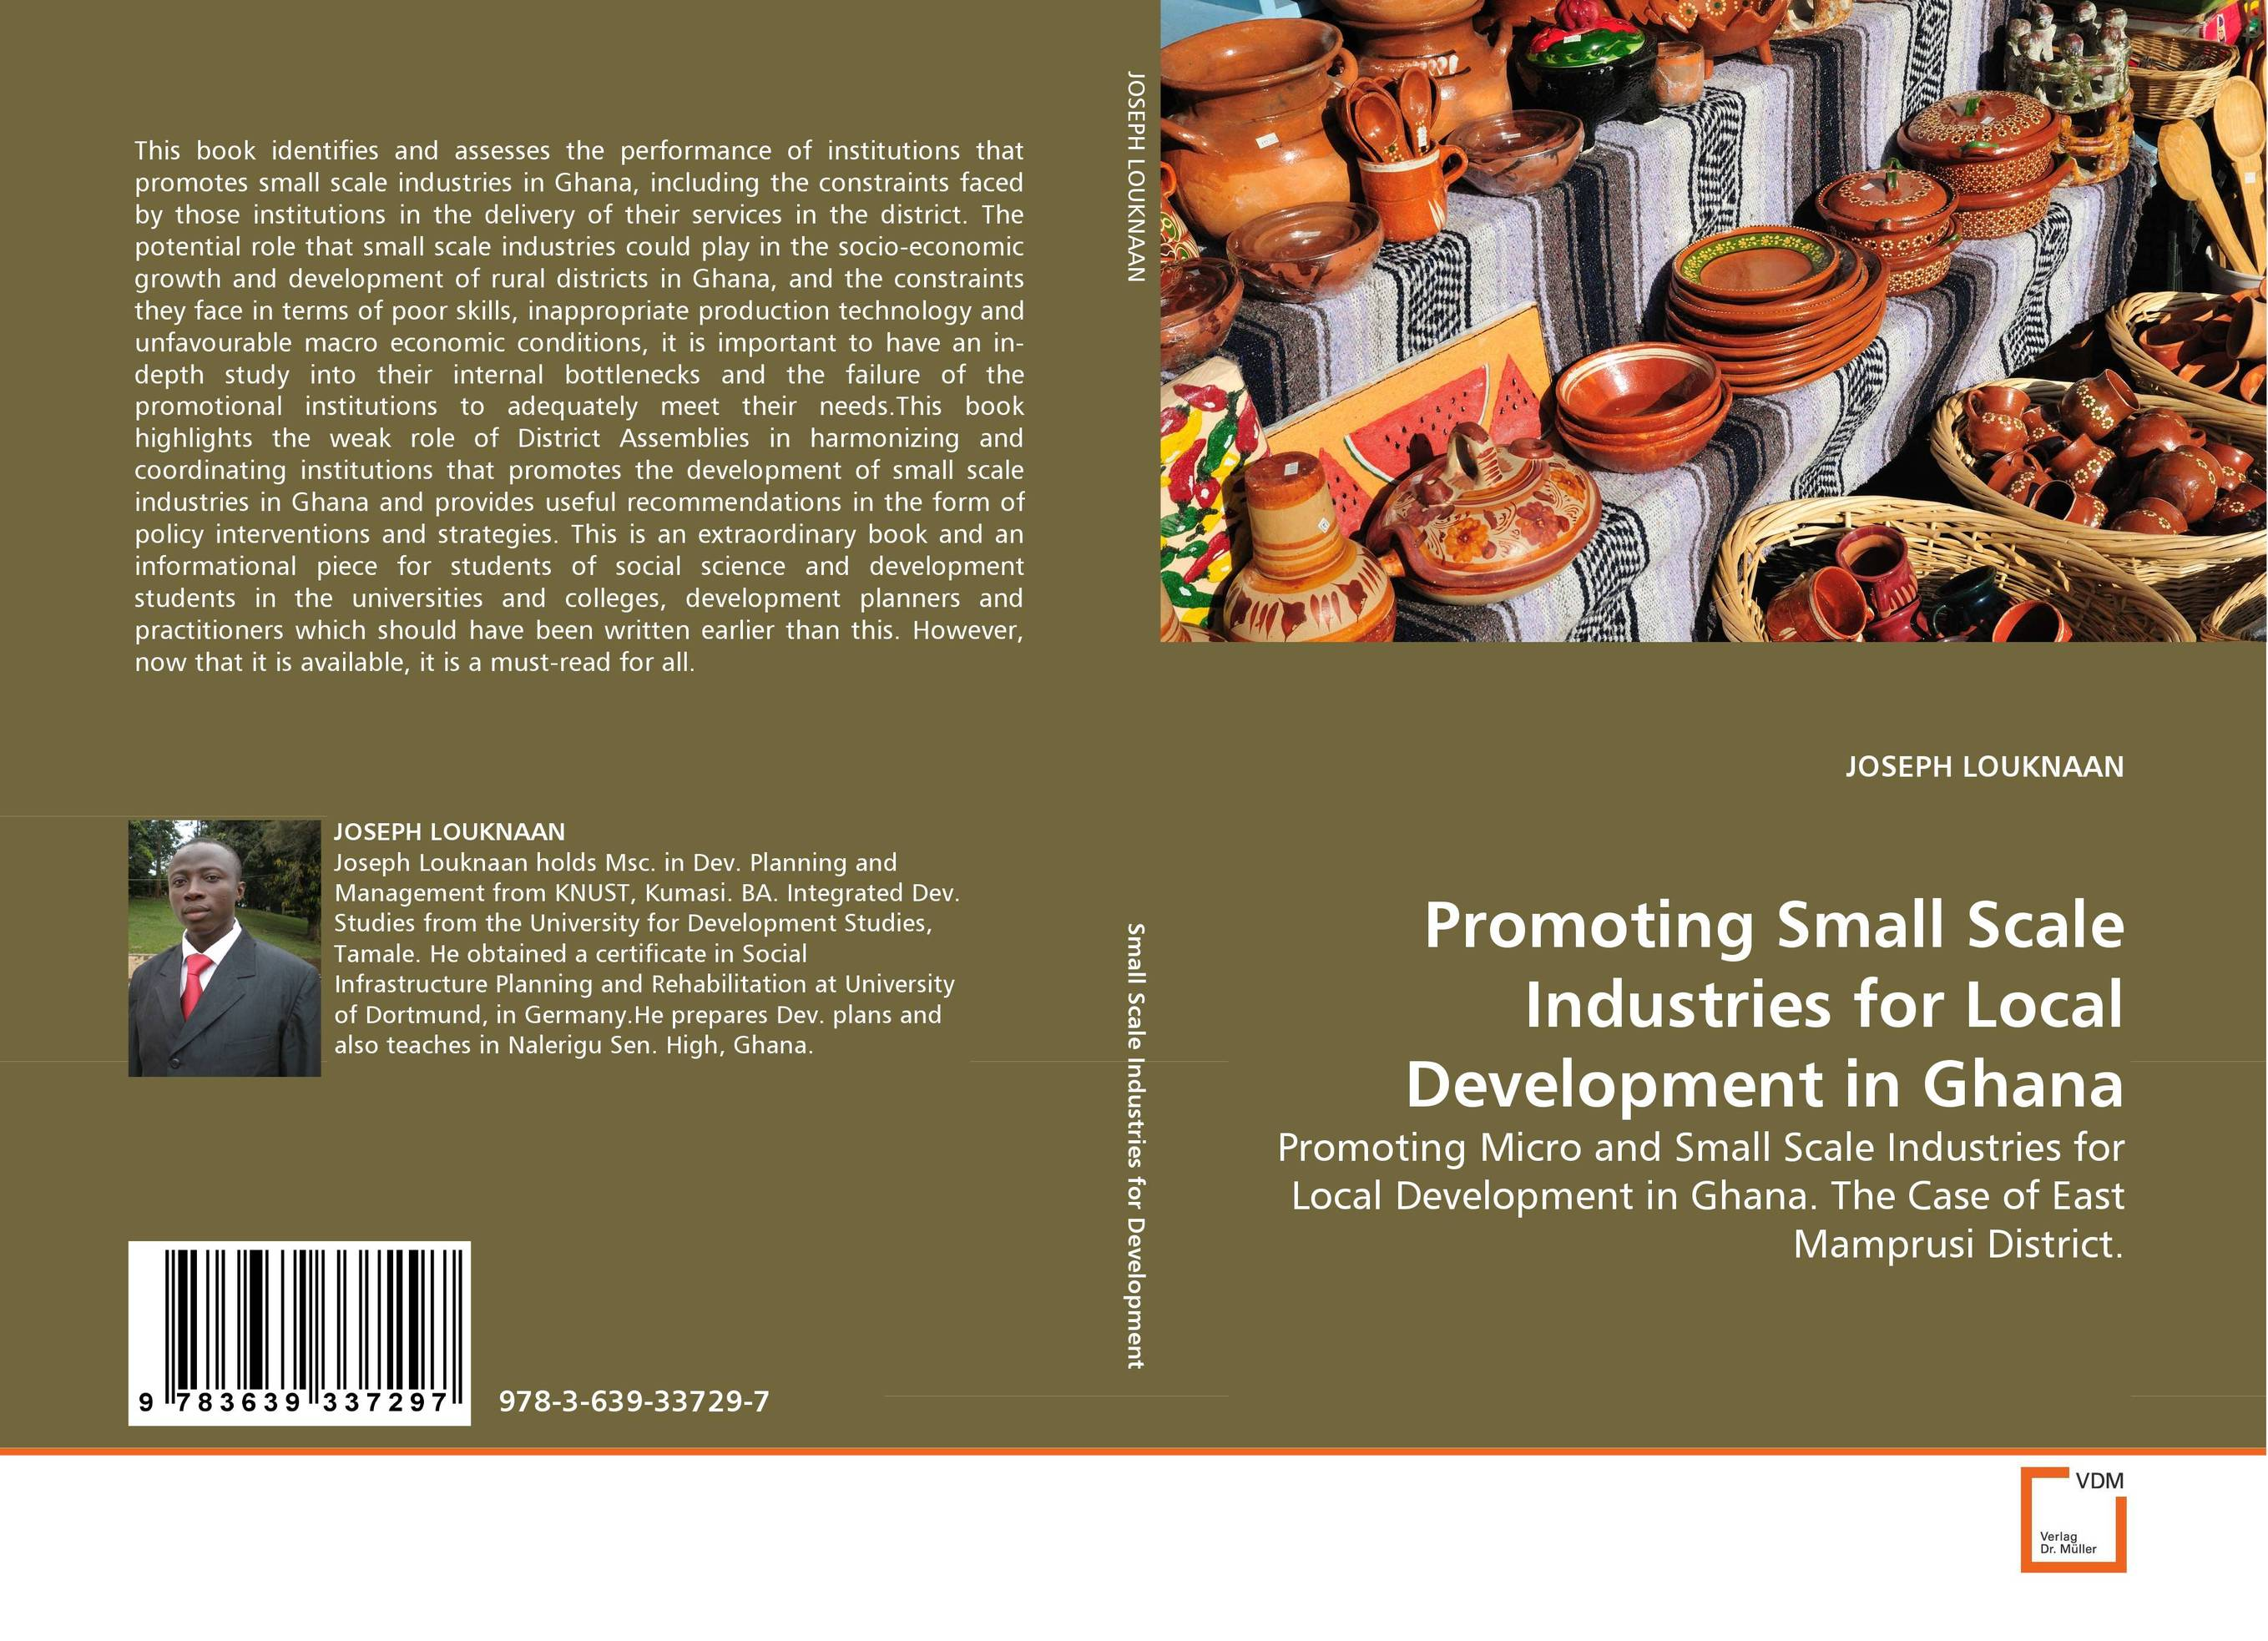 Promoting Small Scale Industries for Local Development in Ghana